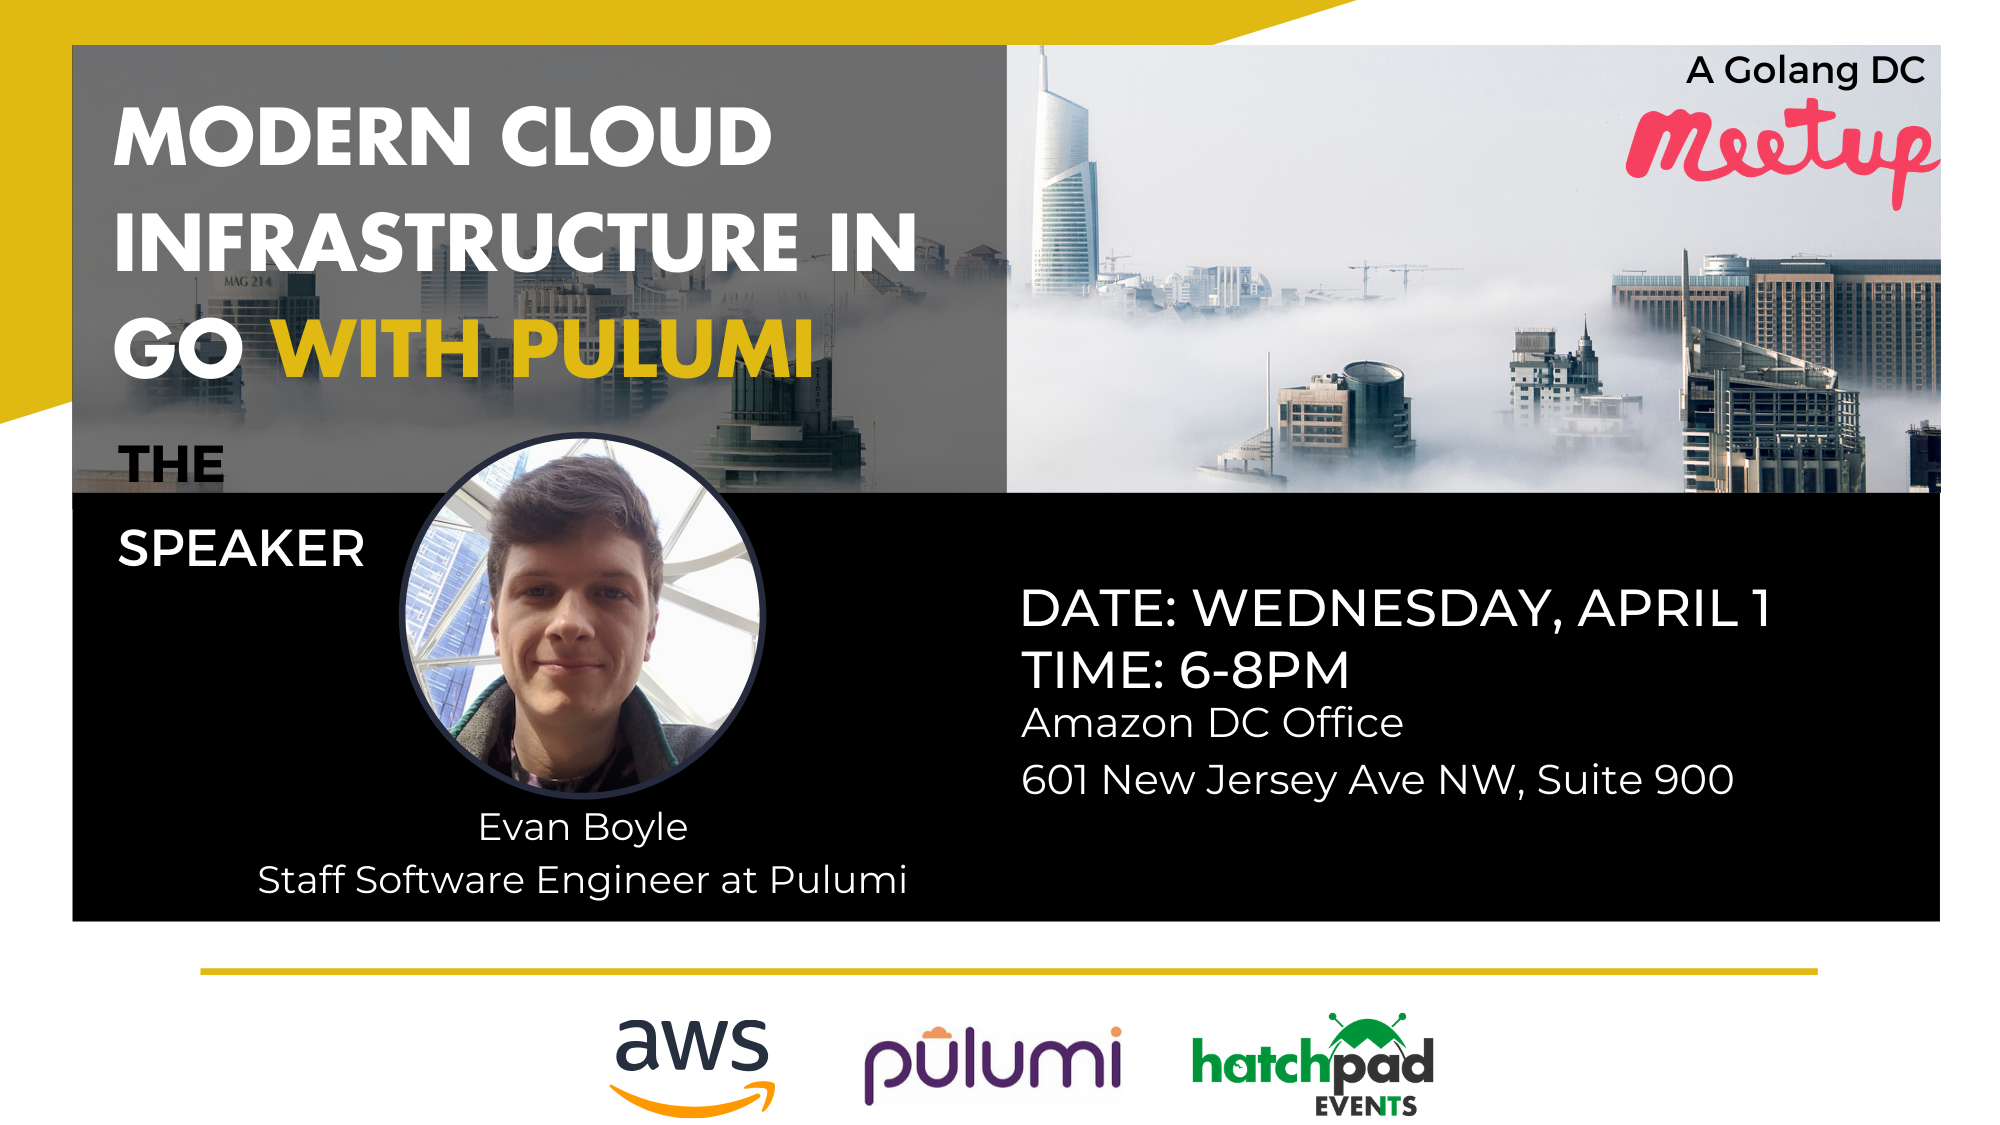 Modern Cloud Infrastructure in Go with Pulumi